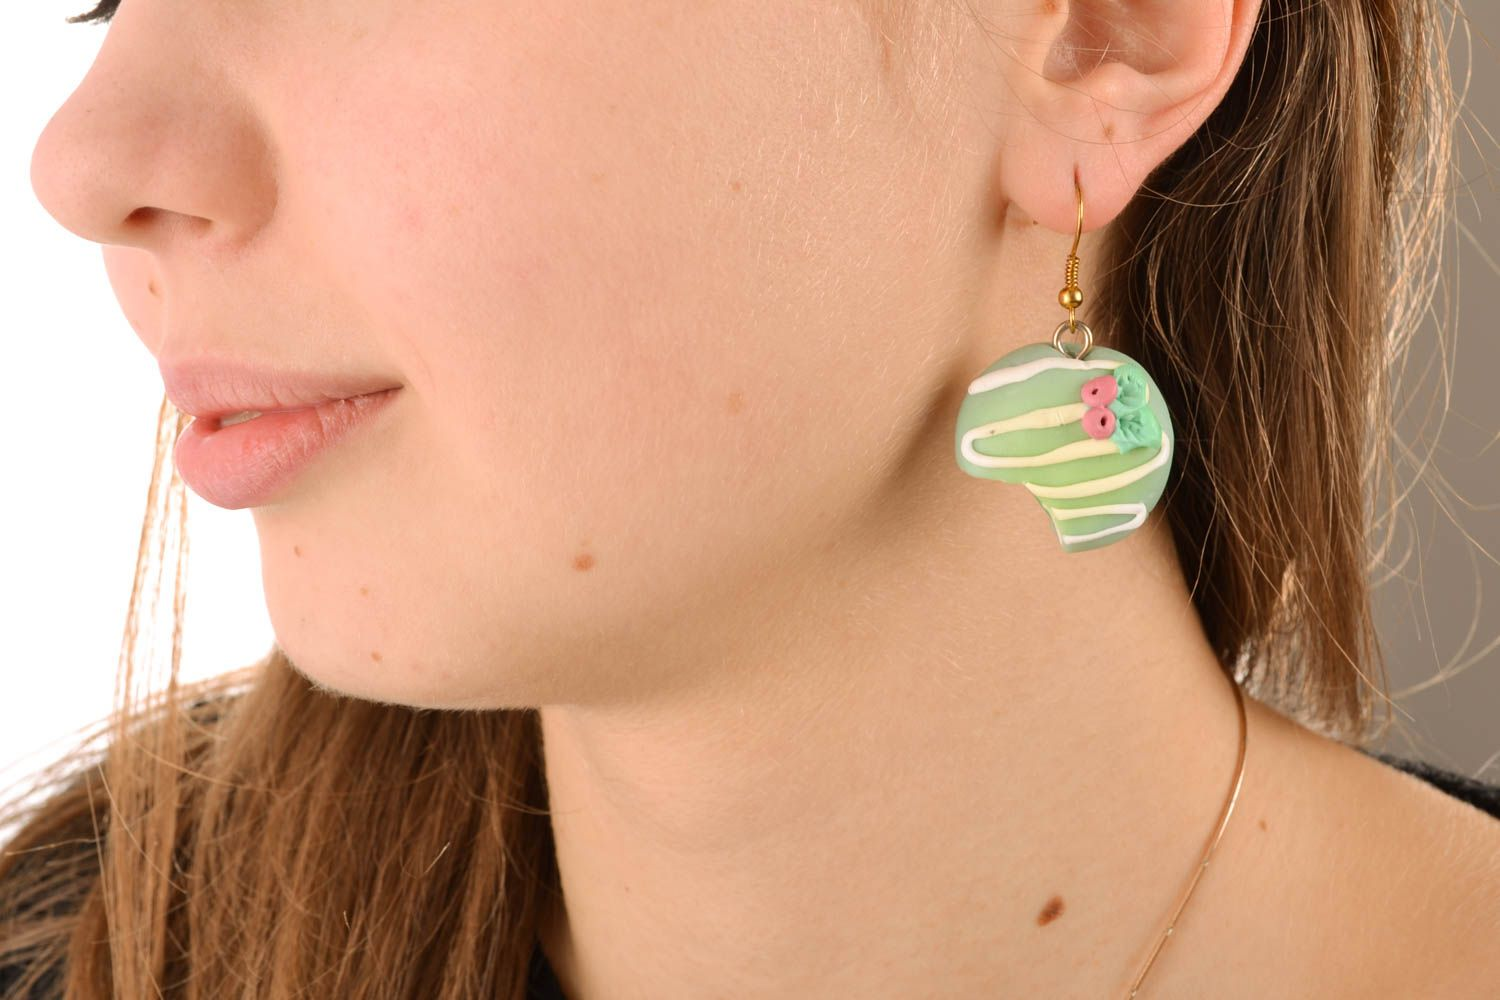 Plastic earrings with charms photo 5